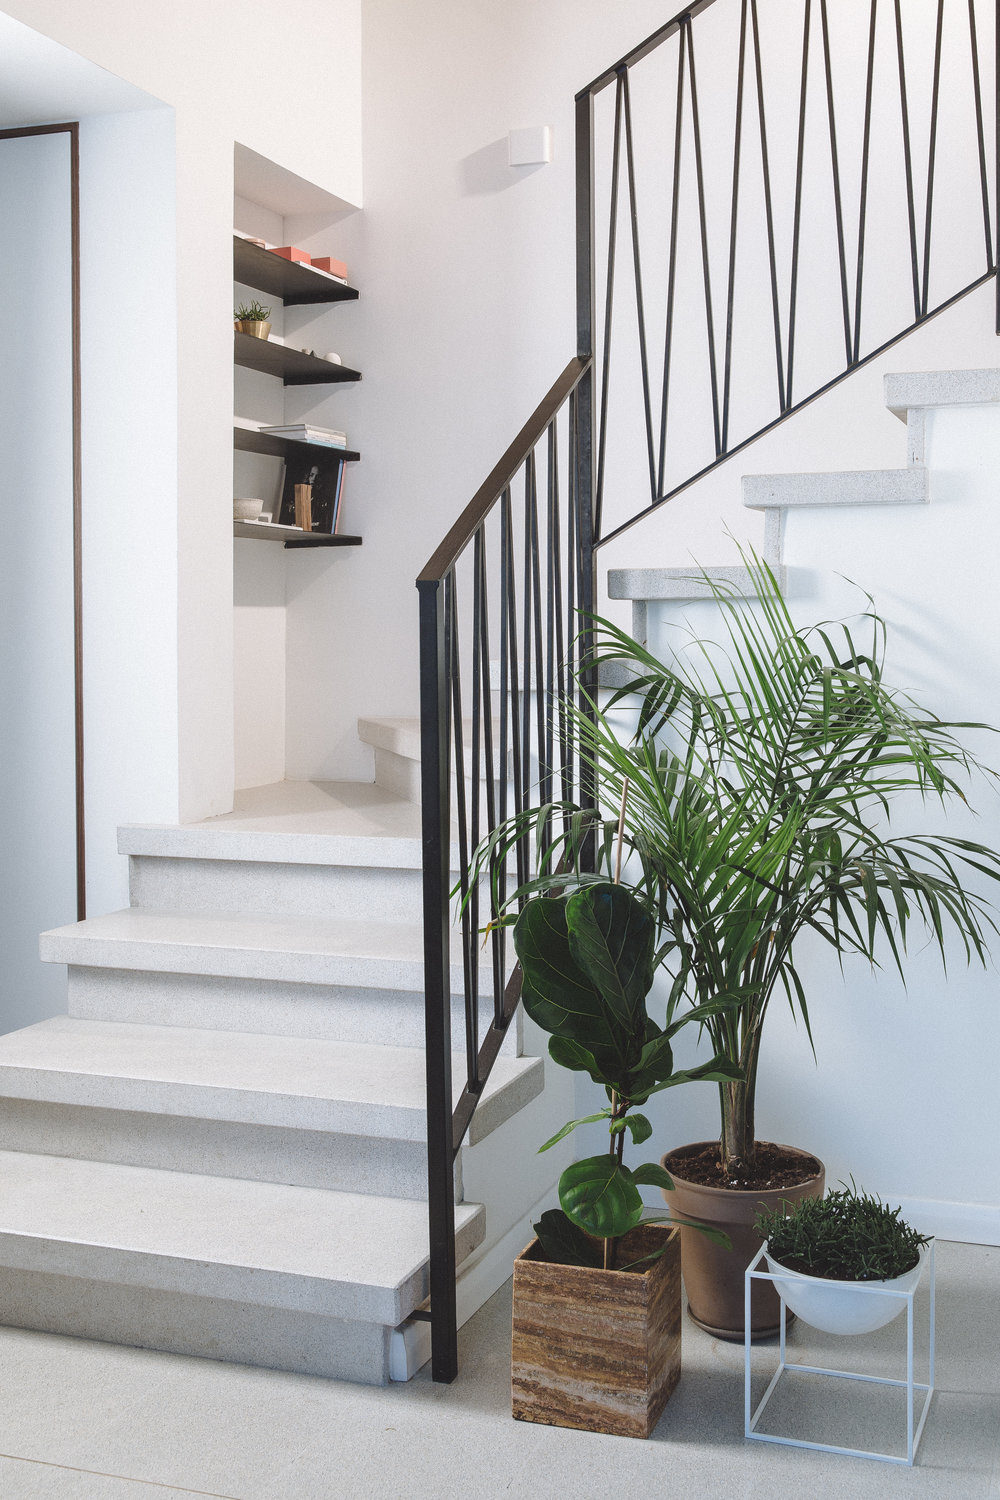 Steel railing. Terrazzo stairs. Greenery in interior design